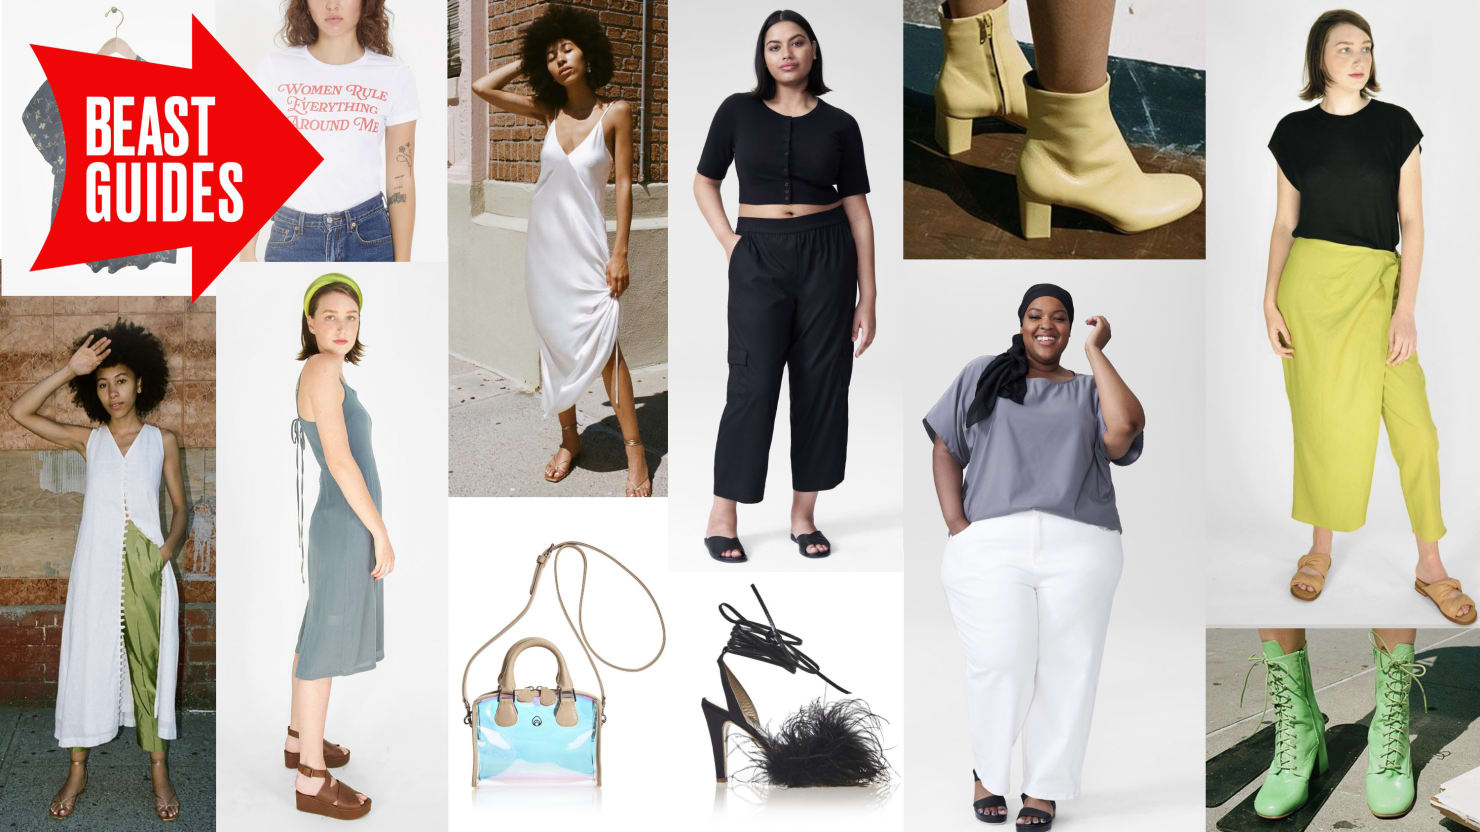 The 10 Best Woman-Owned Clothing Stores in New York City